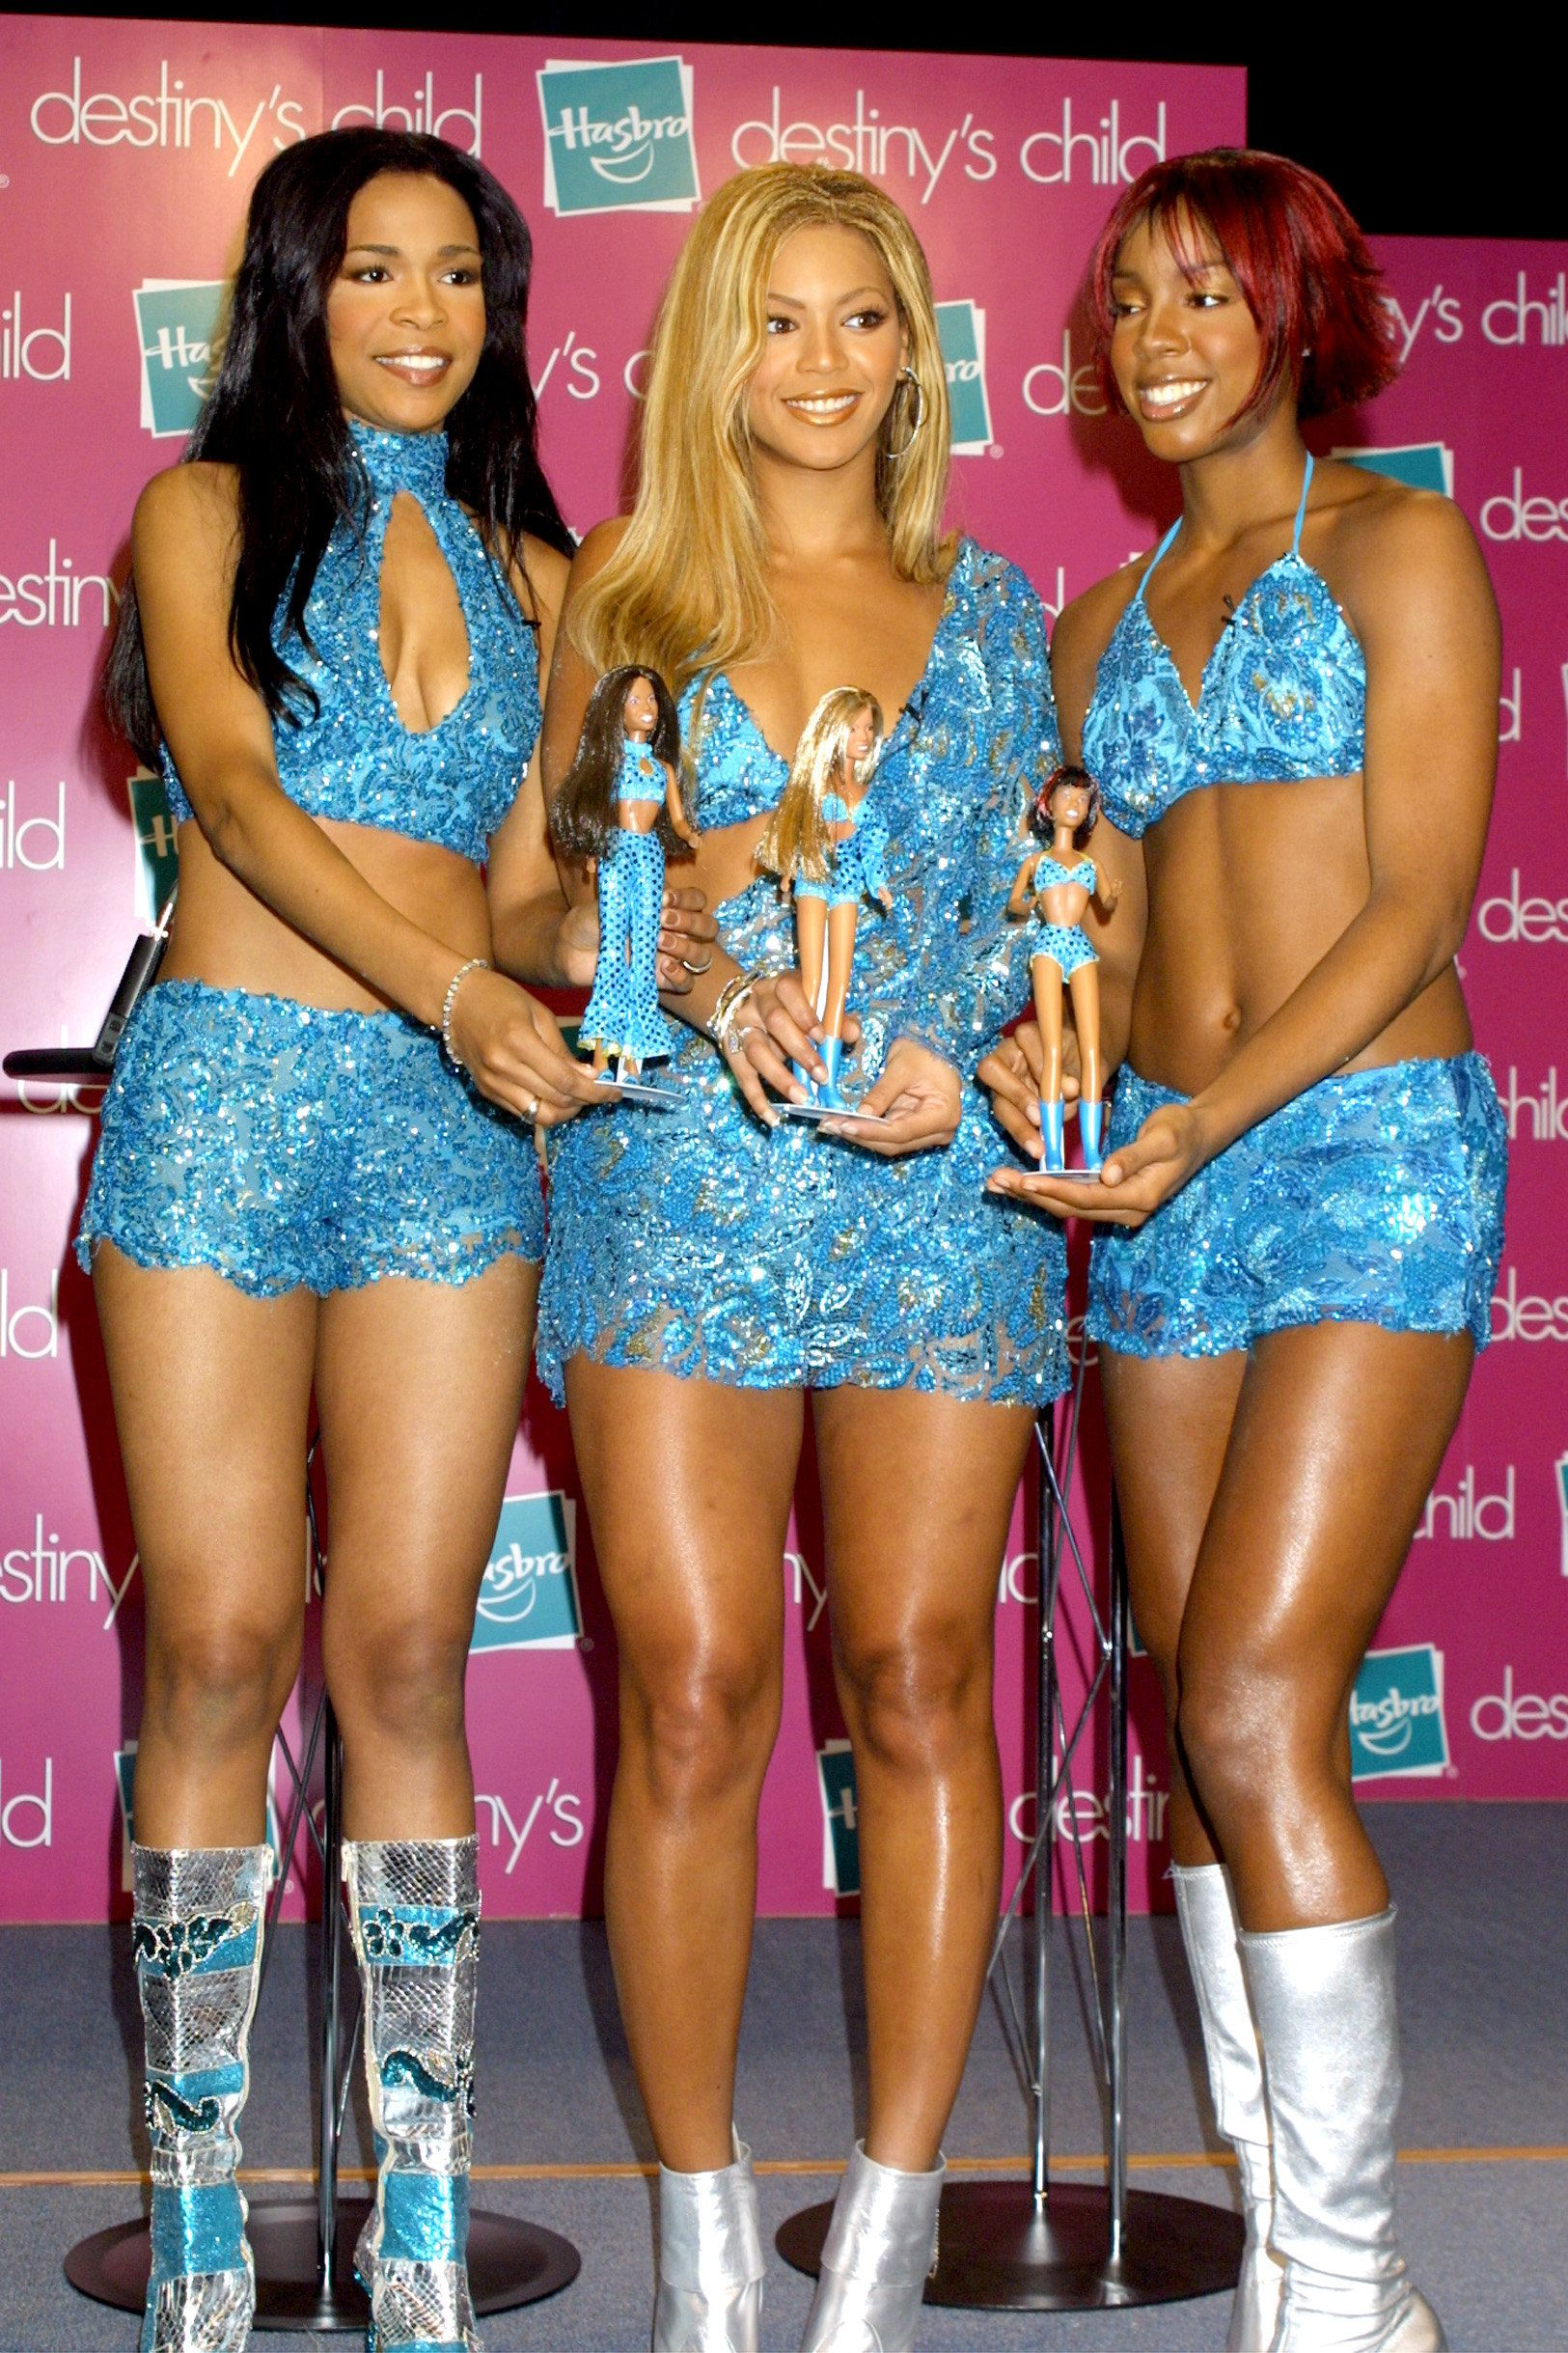 UNITED STATES - CIRCA 2000:  Destiny's Child and their dolls  (Photo by Vinnie Zuffante/Getty Images)